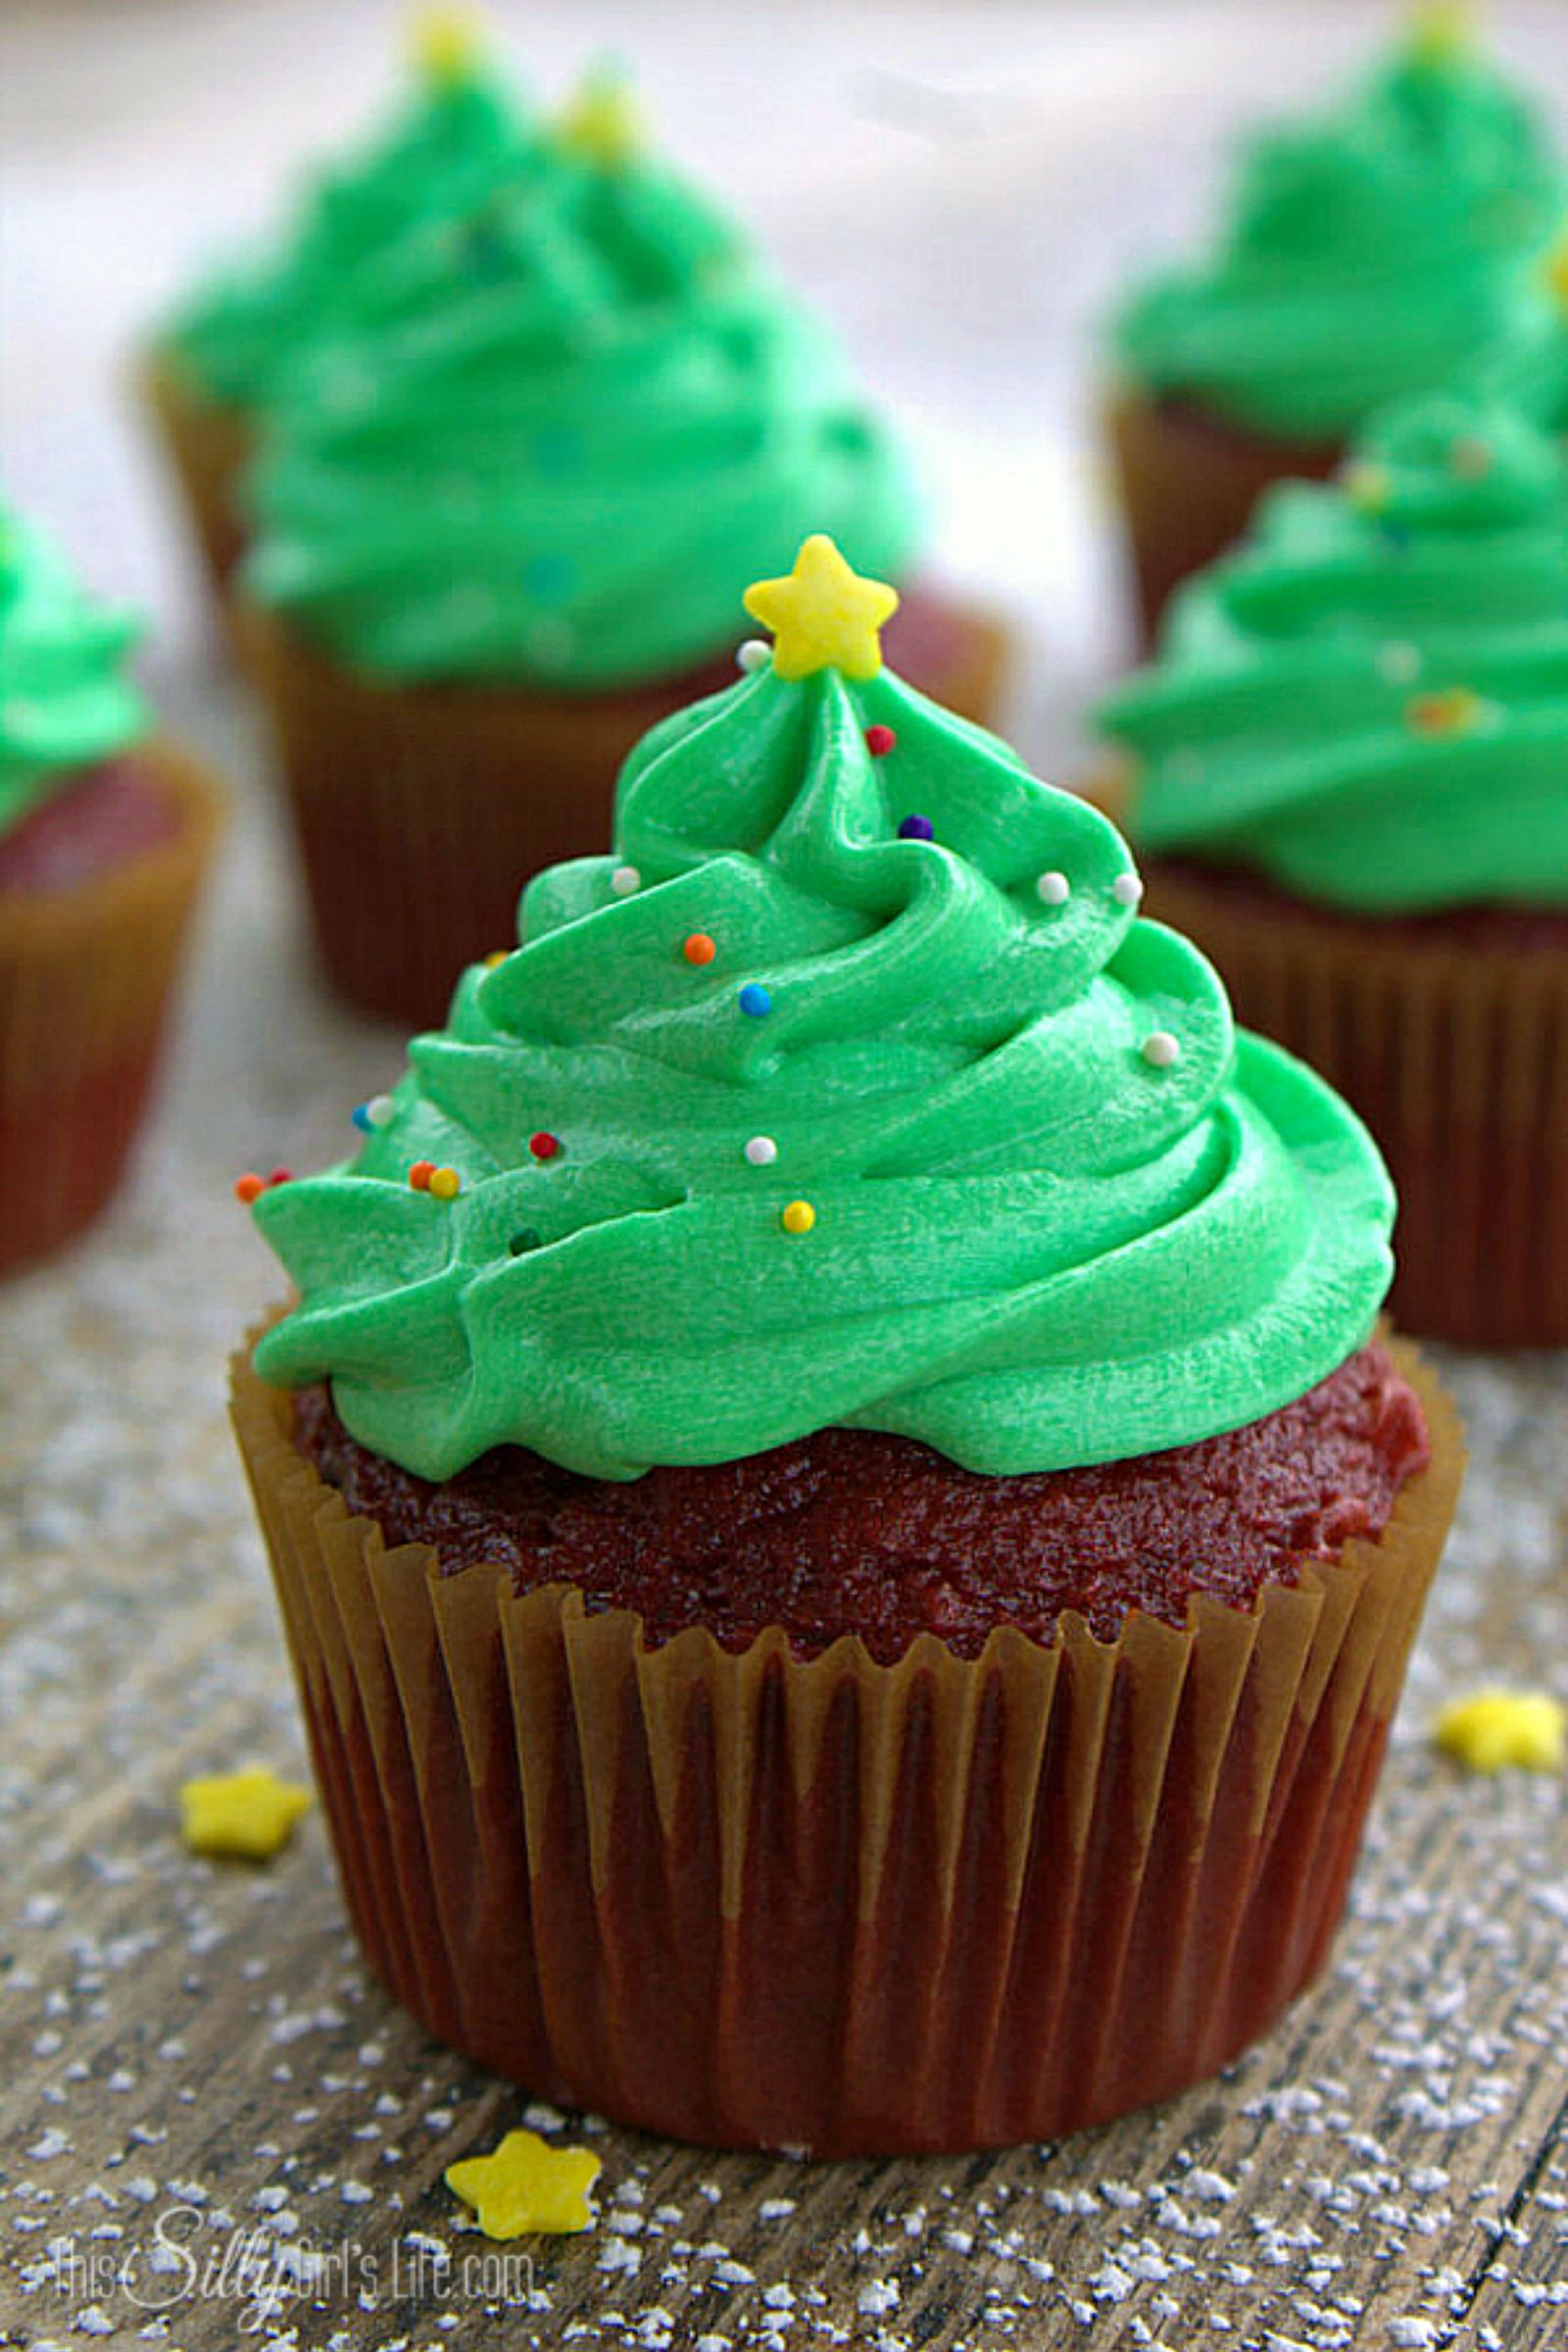 25 cute christmas cupcake ideas easy recipes and decorating tips for holiday cupcakes - Christmas Cupcakes